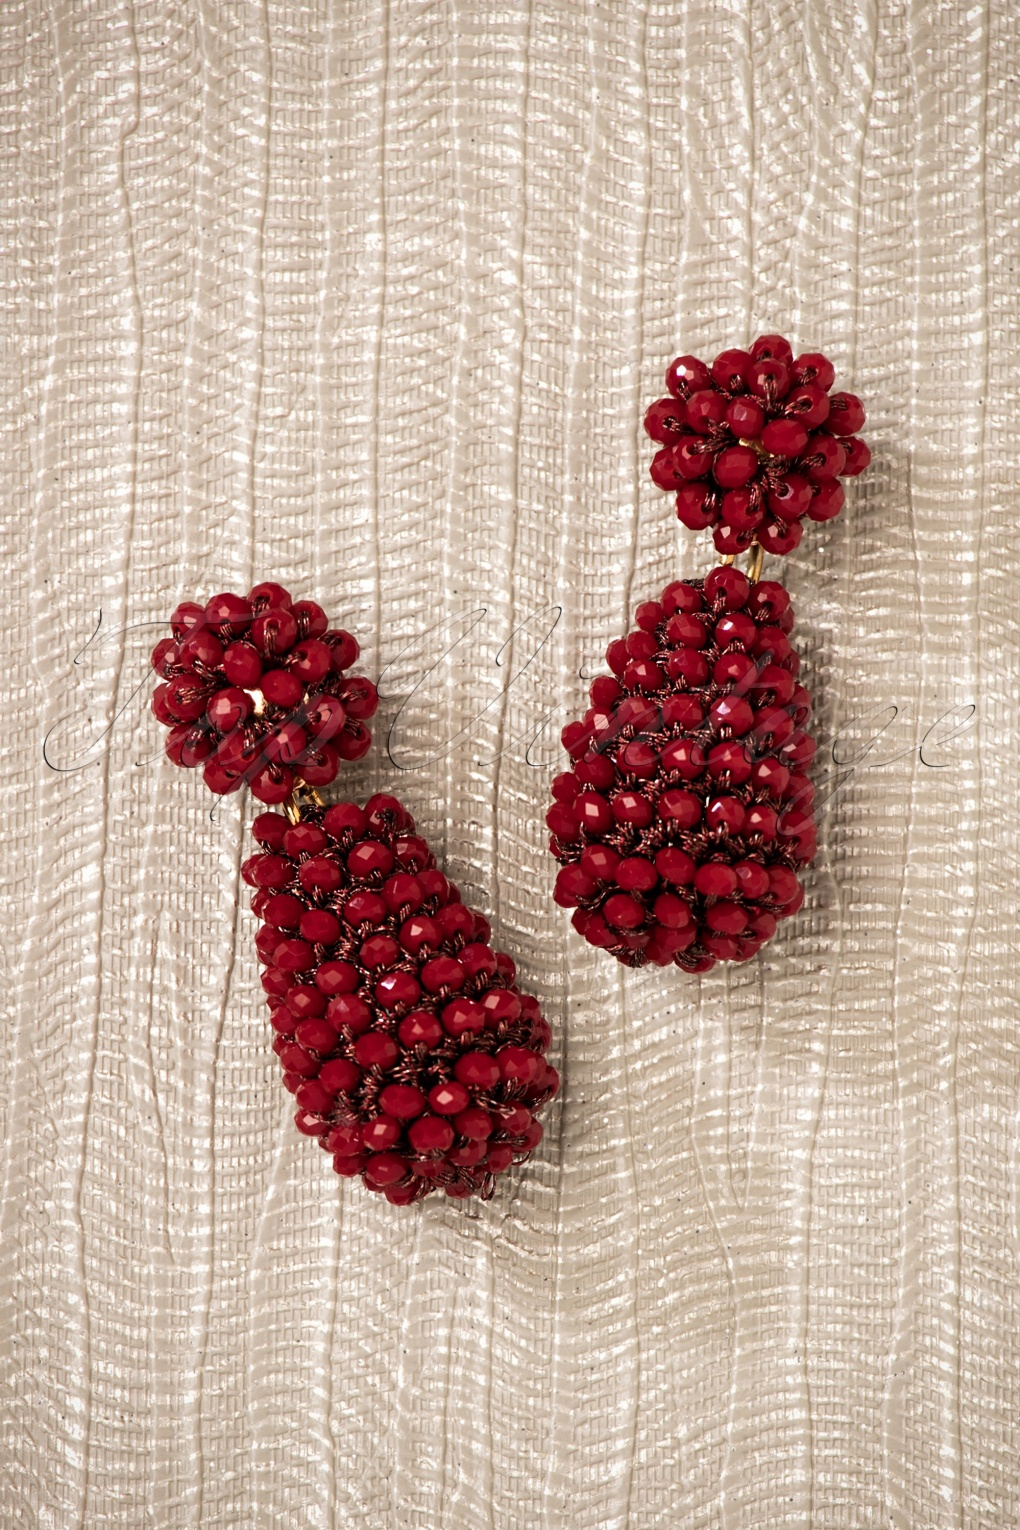 60s -70s Jewelry – Necklaces, Earrings, Rings, Bracelets 60s Maisie Beads Small Earrings in Dark Red £14.21 AT vintagedancer.com